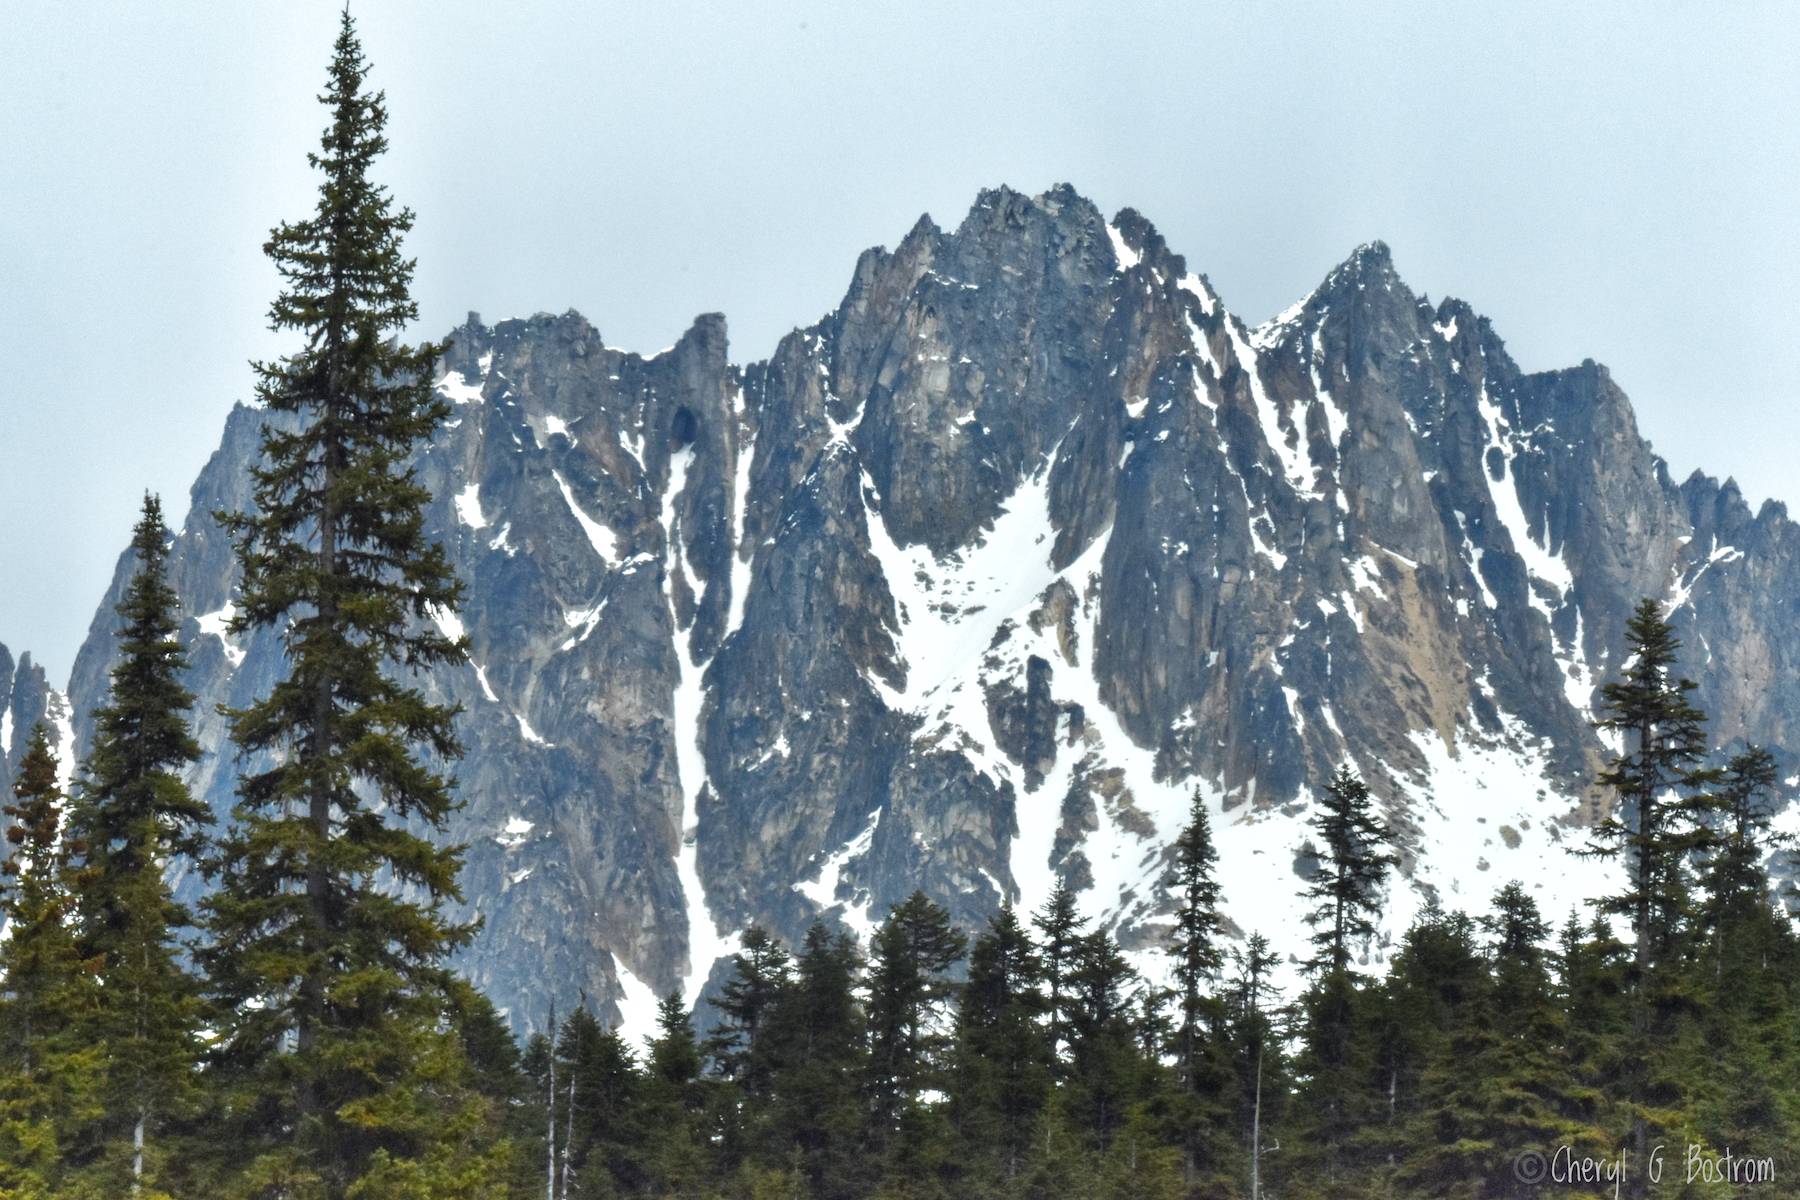 Rocky-crags-like-dogs-molars-tree-lined